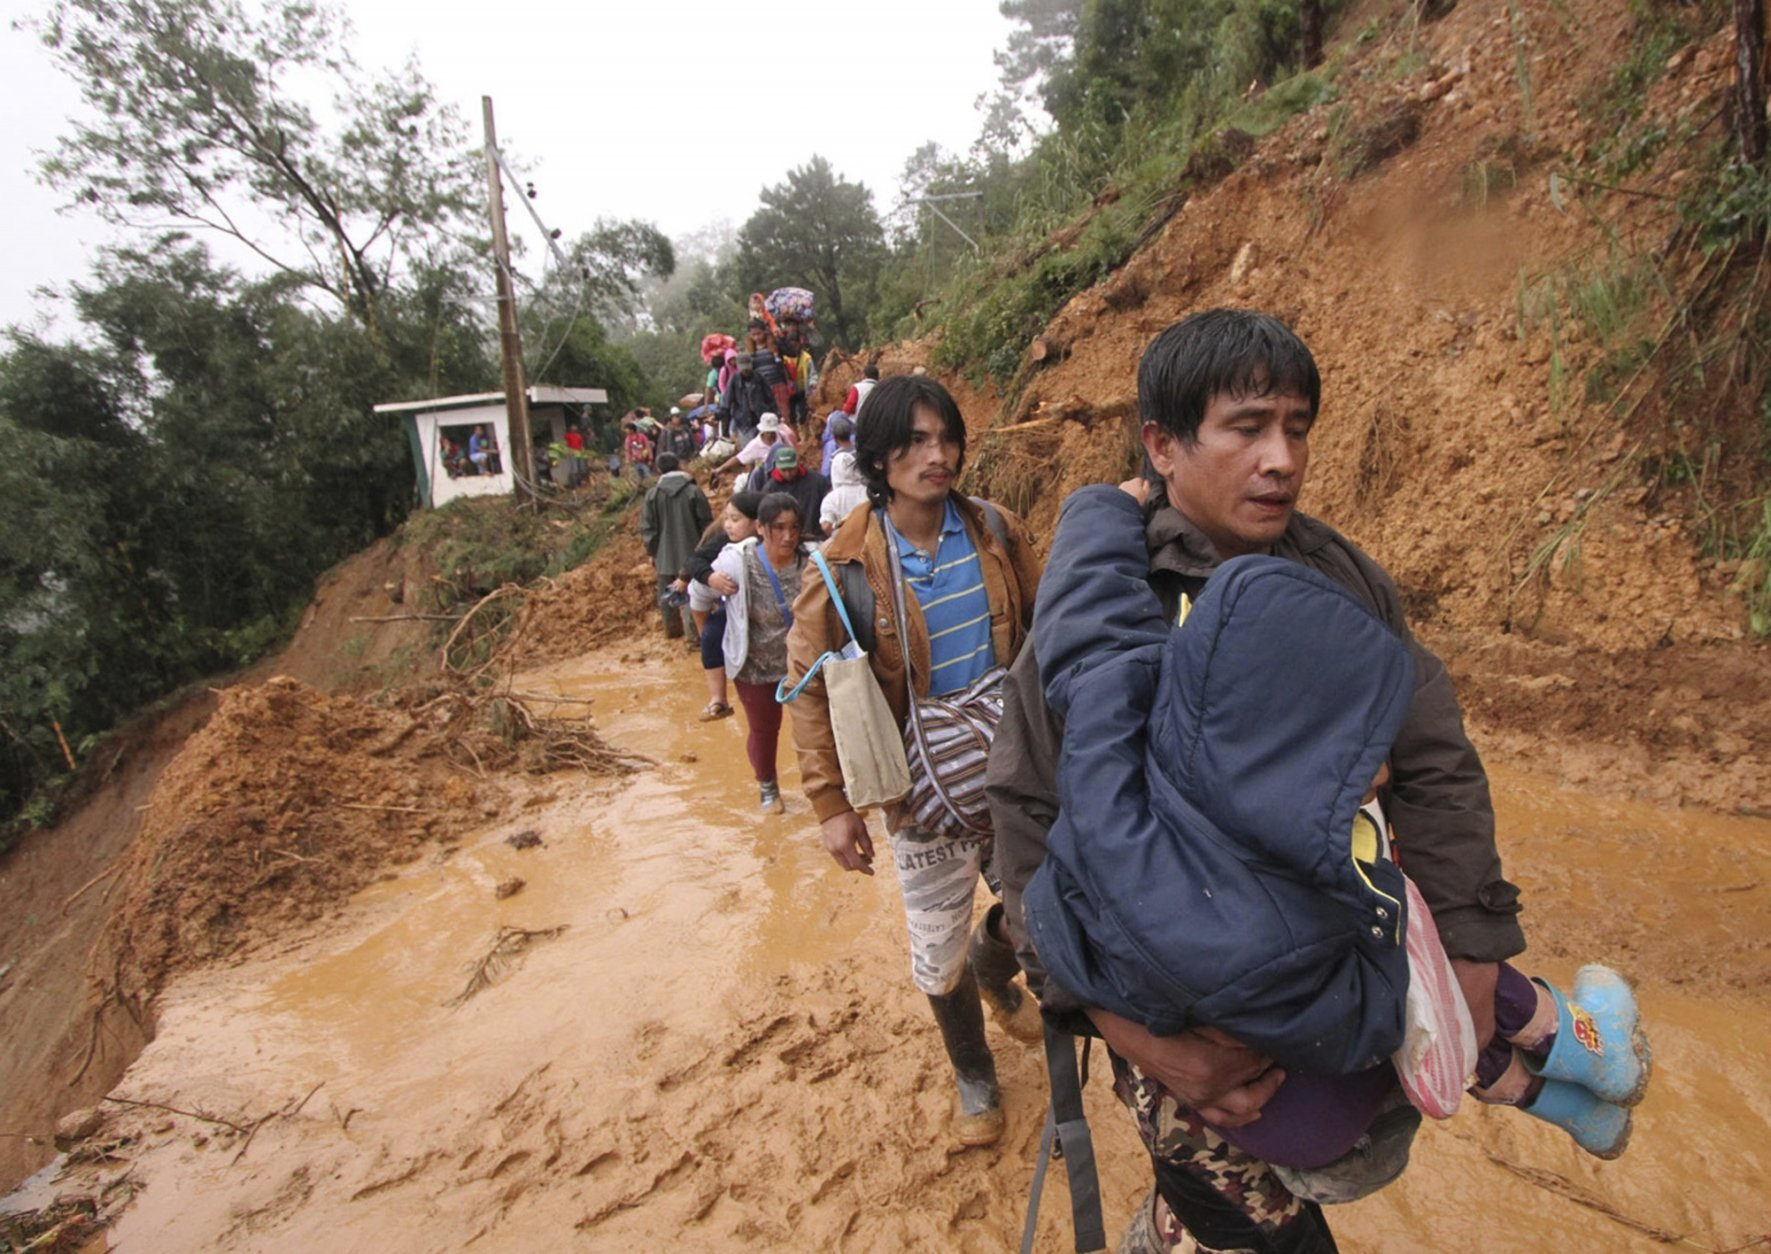 Residents and relatives of miners in Itogon township, Benguet province in the northern Philippines, carry their belongings as they evacuate to following landslides triggered by Typhoon Mangkhut burying an unknown number of miners and isolating the township Sunday, Sept. 16, 2018. Typhoon Mangkhut barreled into southern China on Sunday after lashing the northern Philippines with strong winds and heavy rain that left more than dozens dead from landslides and drownings. (AP Photo/Jayjay Landingin)